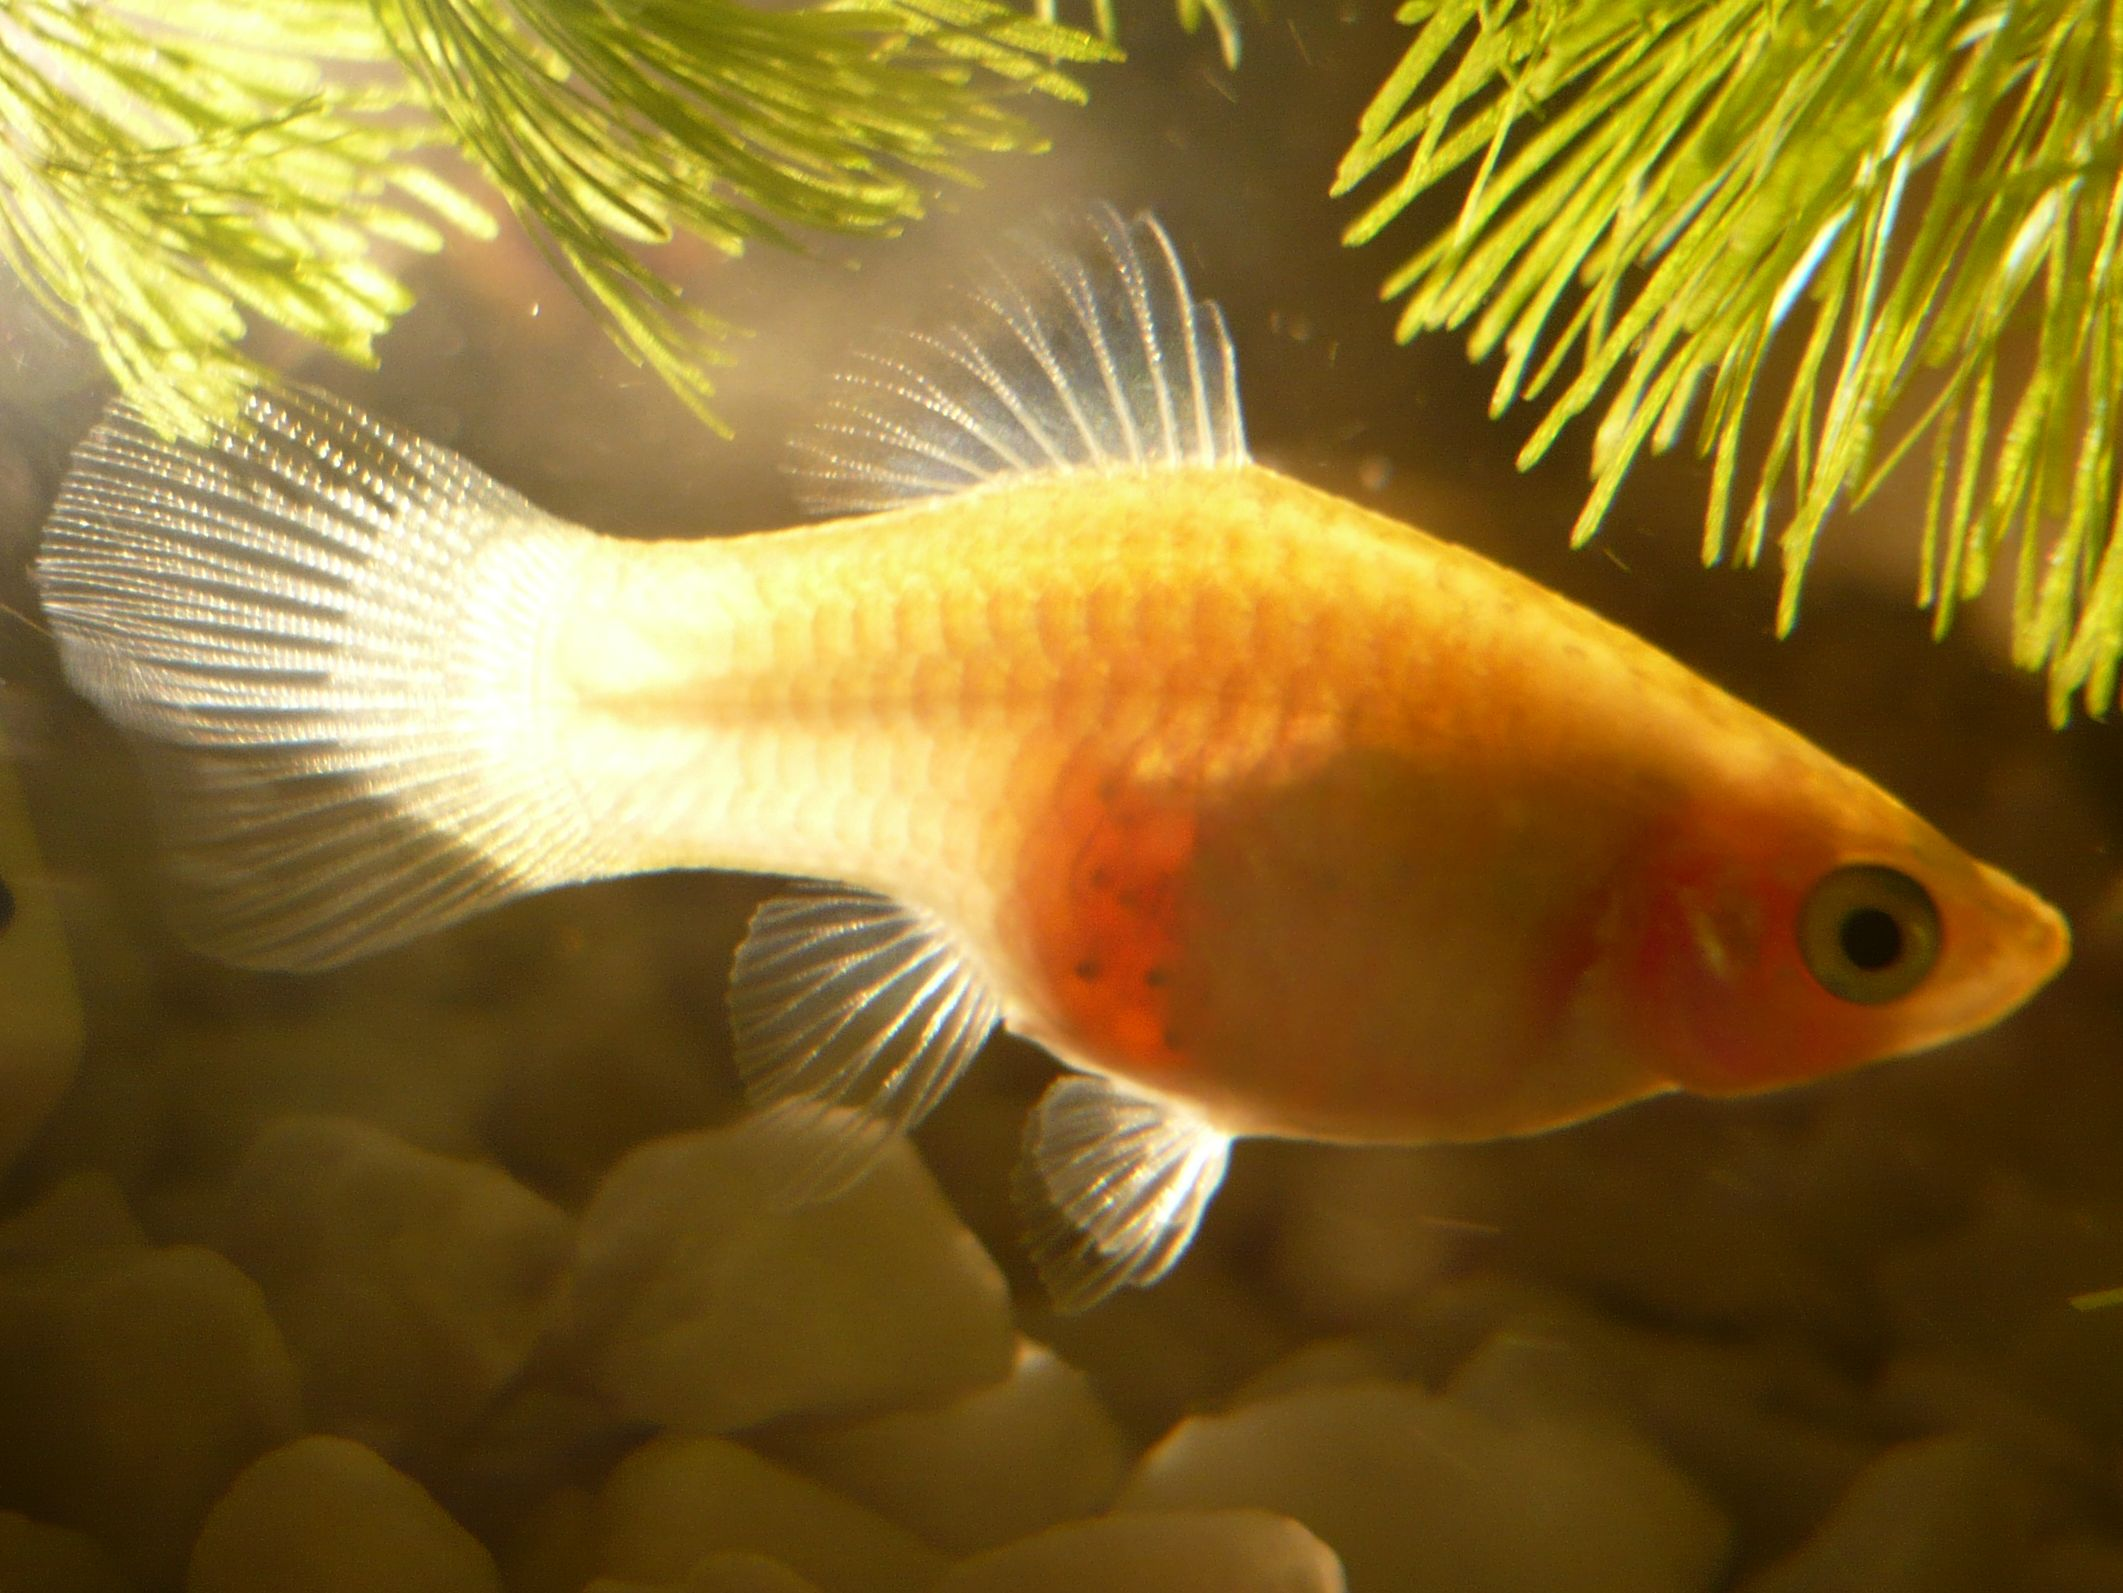 Here's a pic of a pregnant platy, see if yours looks anything like this: